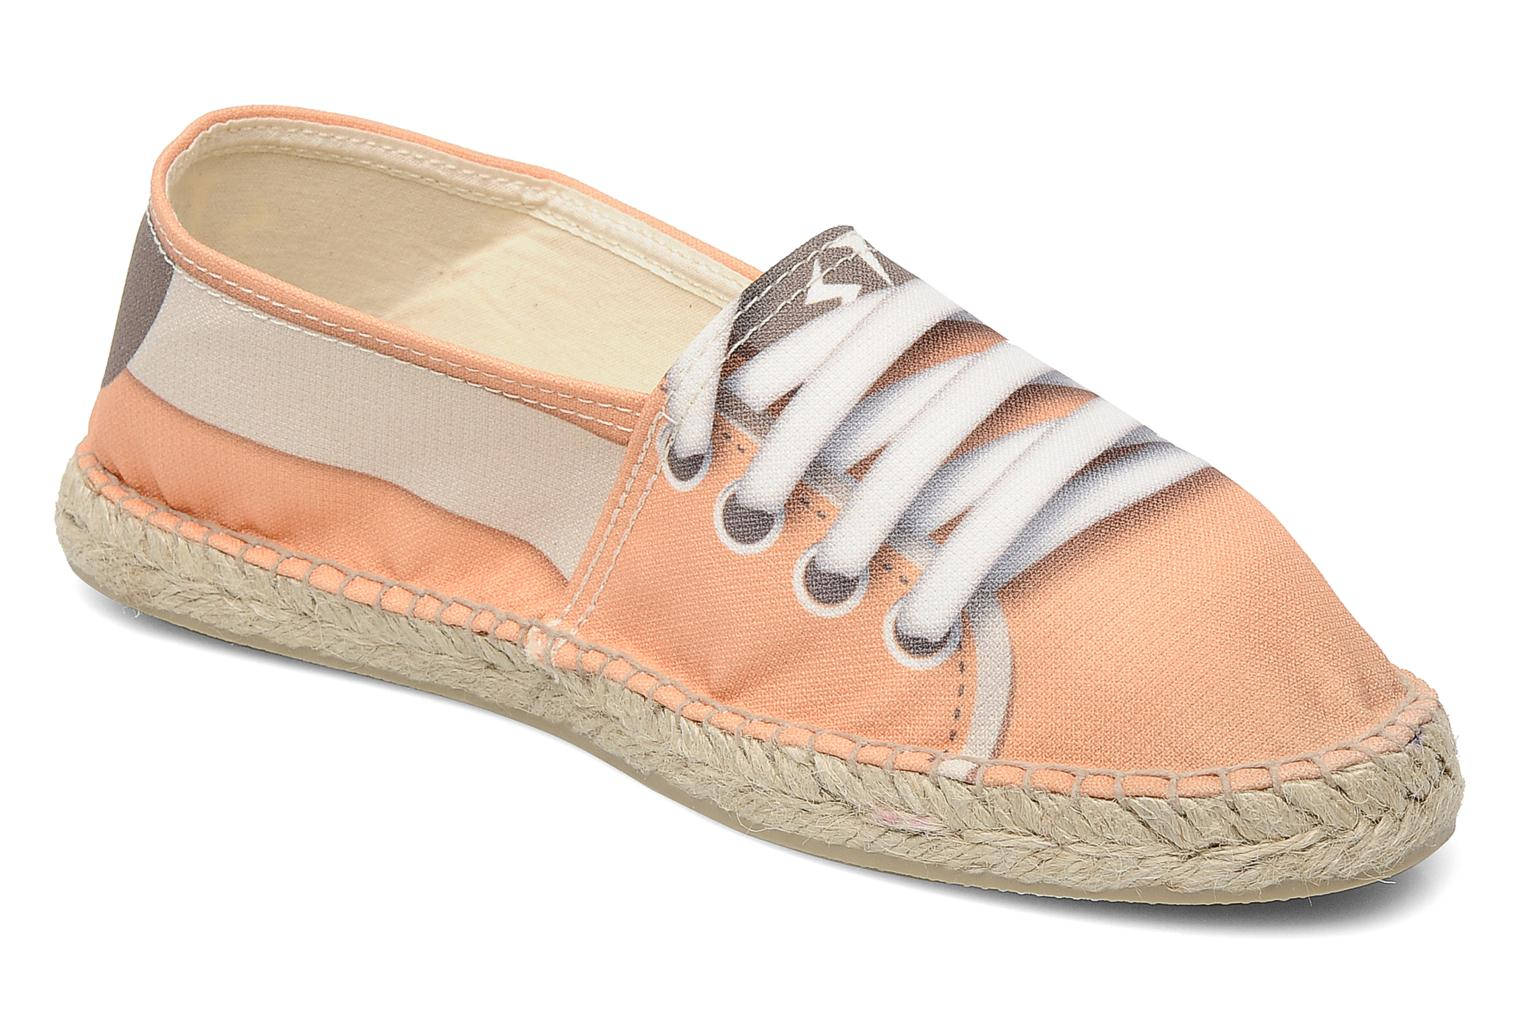 Espadrilles Salmon Koala W by String Republic